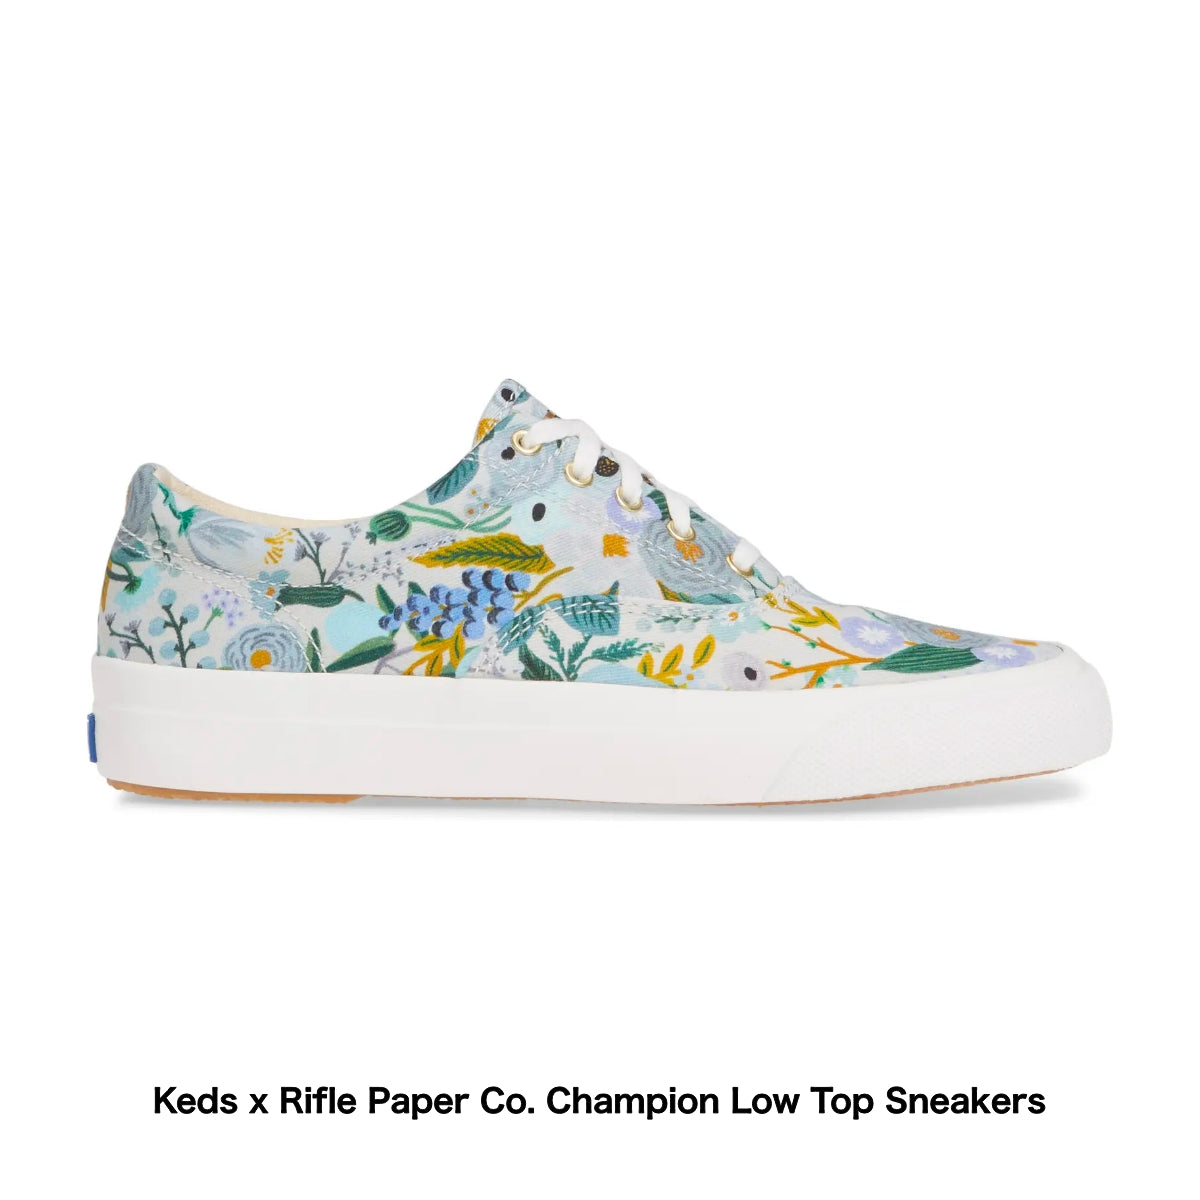 Keds x Rifle Paper Co. Champion Low Top Sneakers - Nordstrom